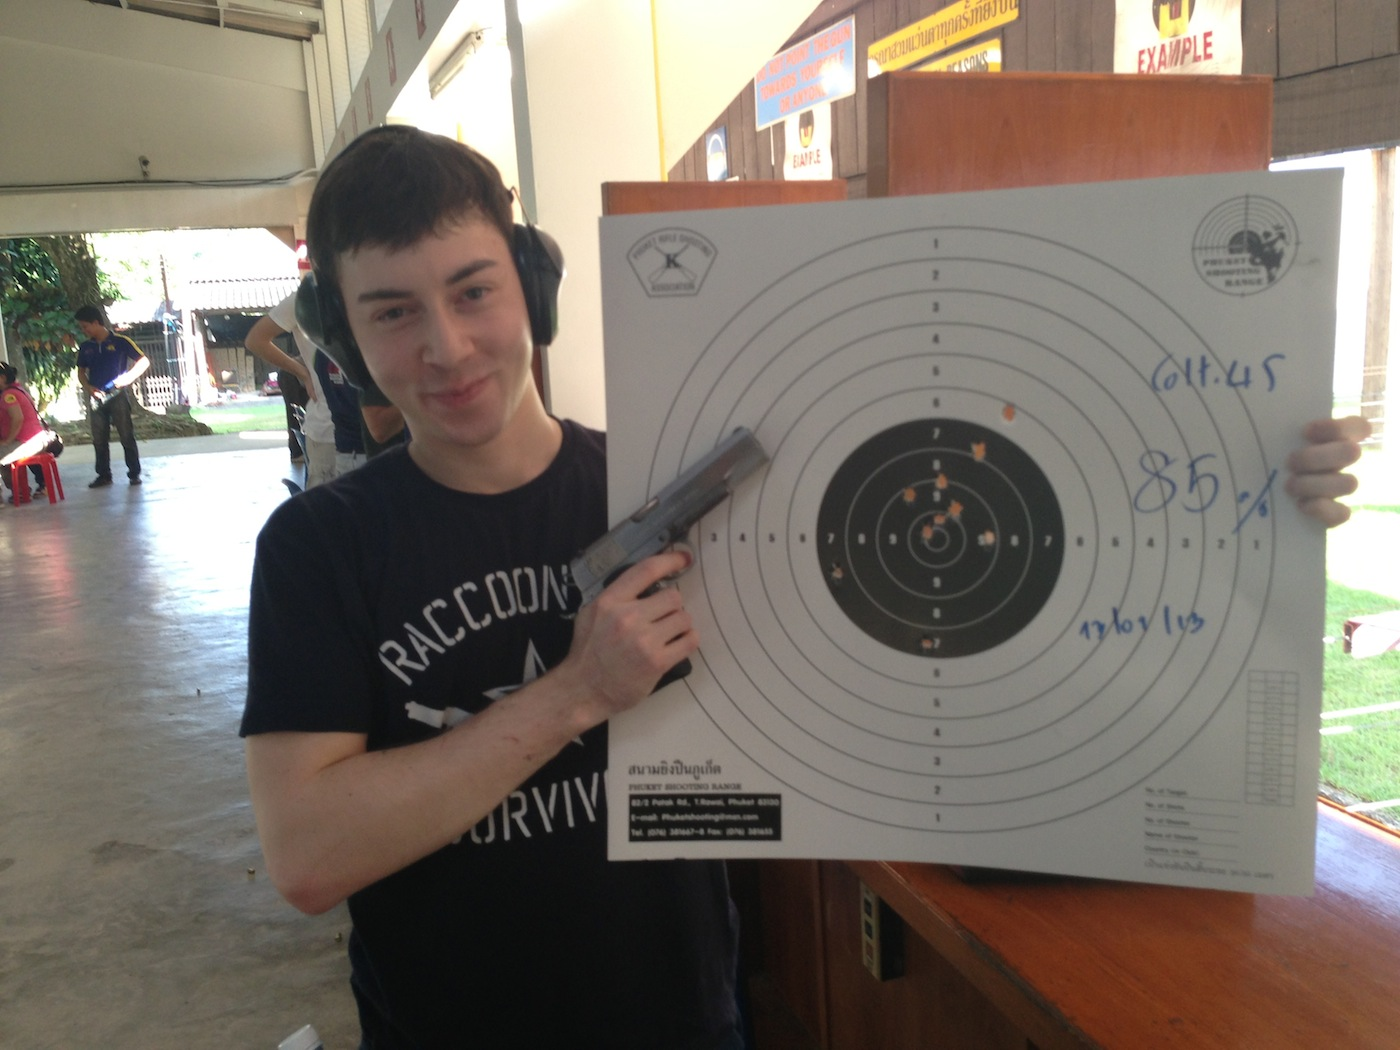 We even went shooting; this is our front-end engineer. He shoots like his code, dead on.